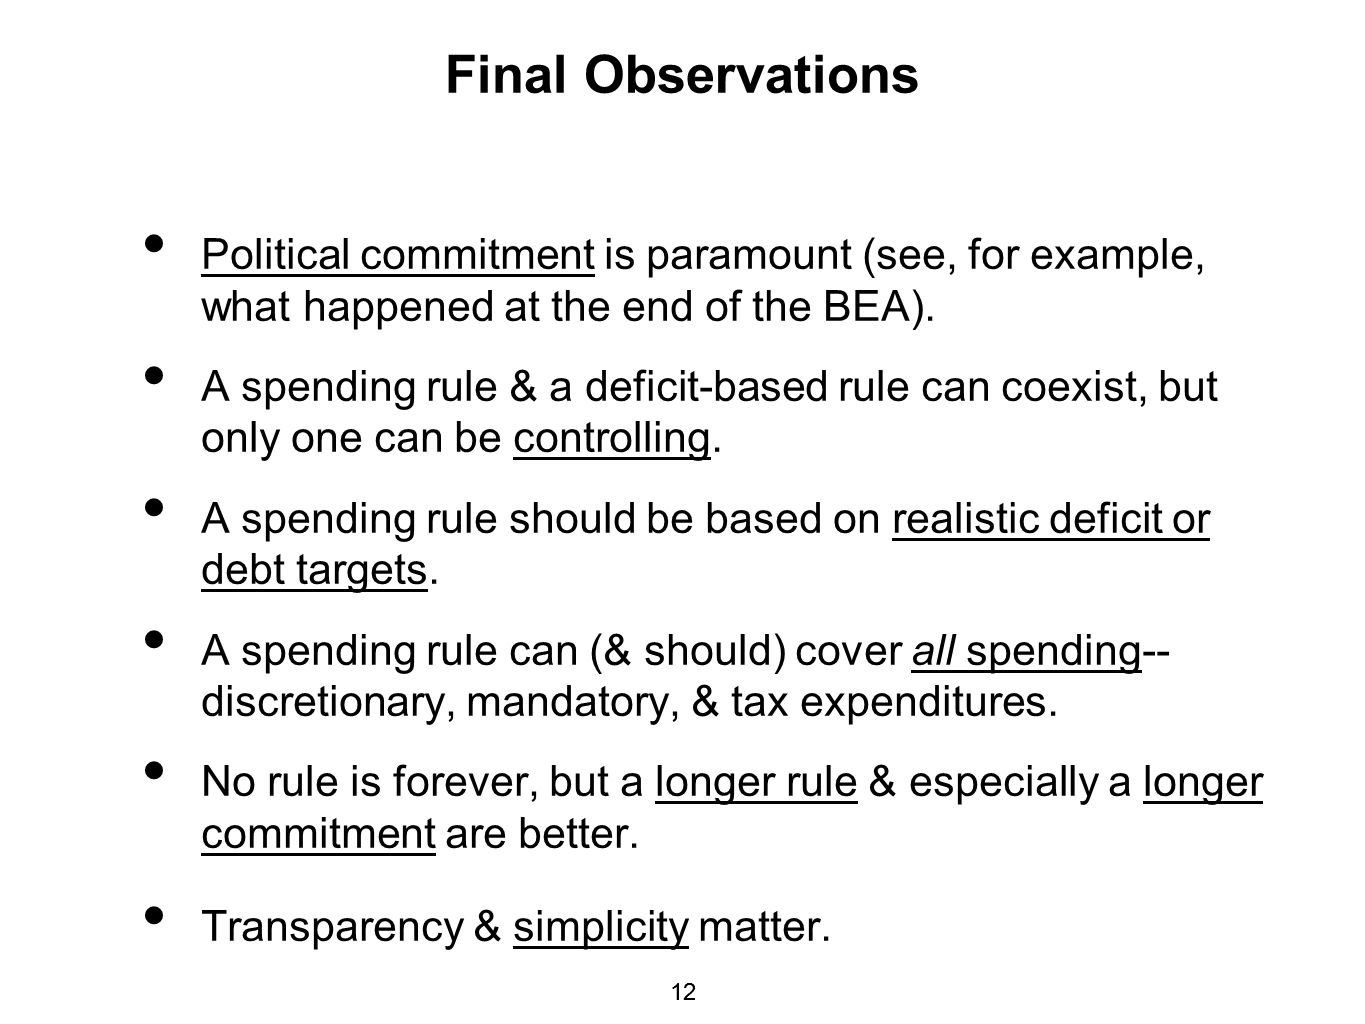 Final ObservationsPolitical commitment is paramount (see, for example, what happened at the end of the BEA).